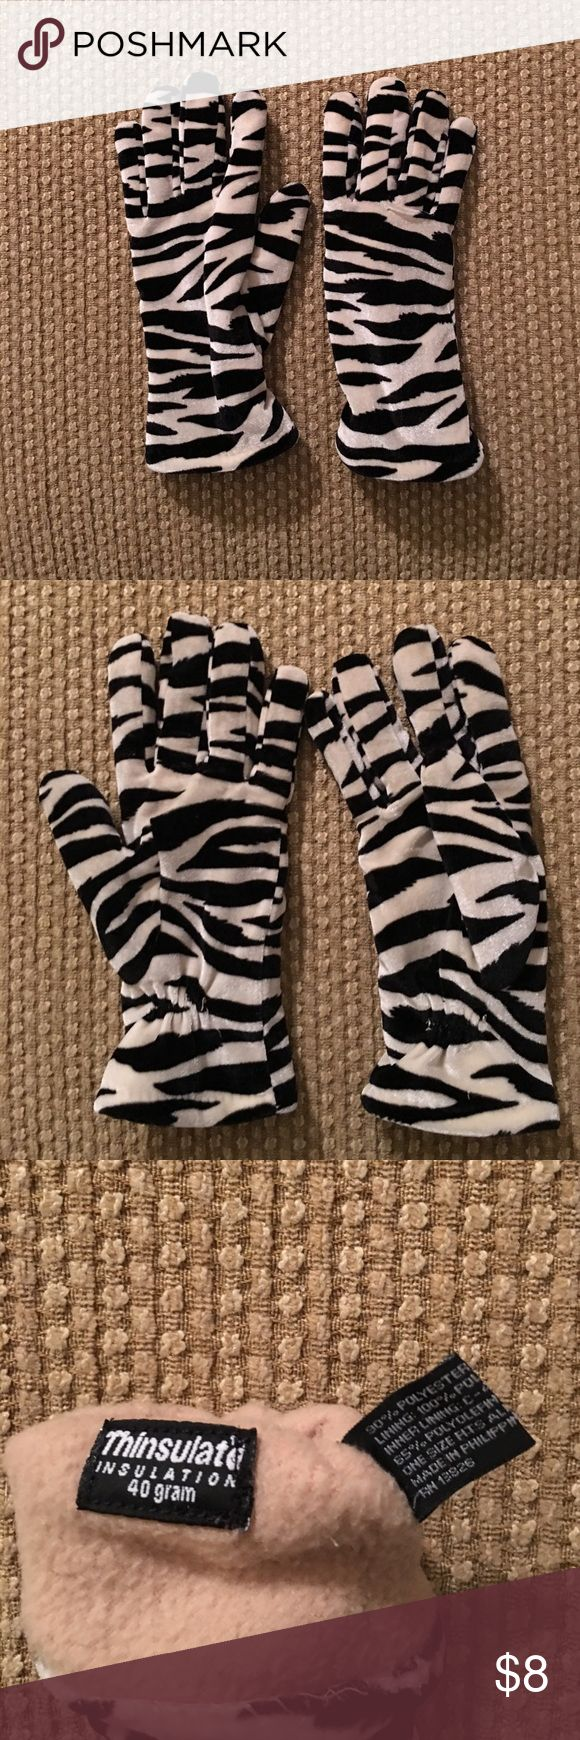 Thinsulate gloves Zebra print thinsulate gloves. Great worn condition. No size listed but fits like a small. thinsulate Accessories Gloves & Mittens